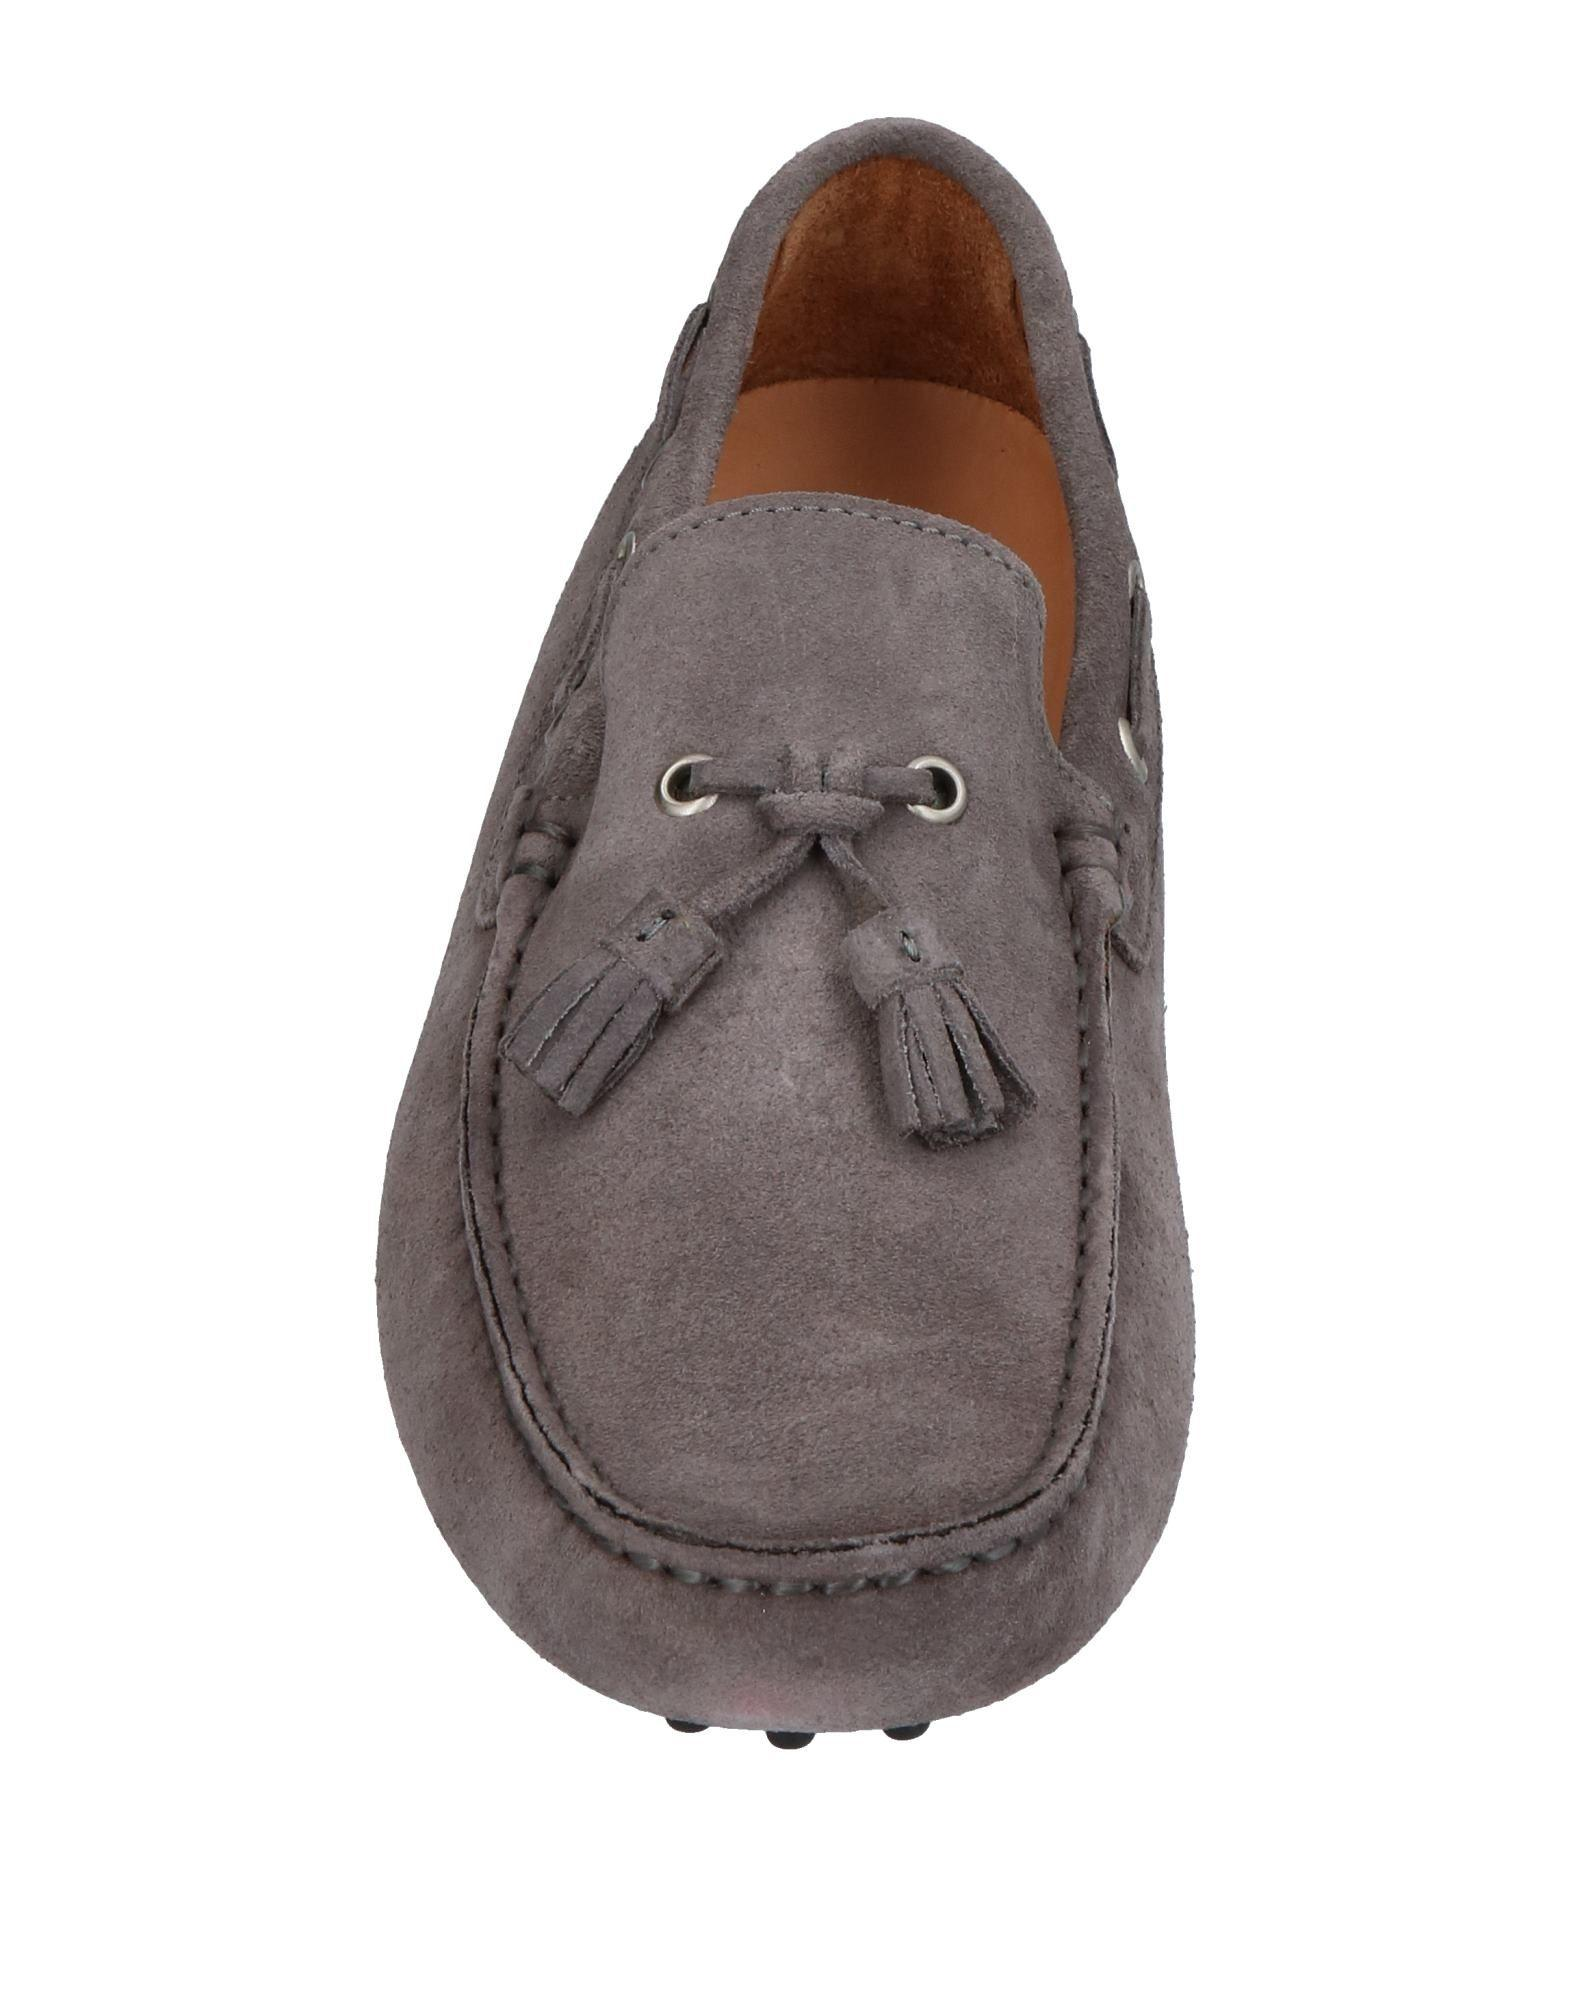 Kiton Suede Loafer in Lead (Grey) for Men